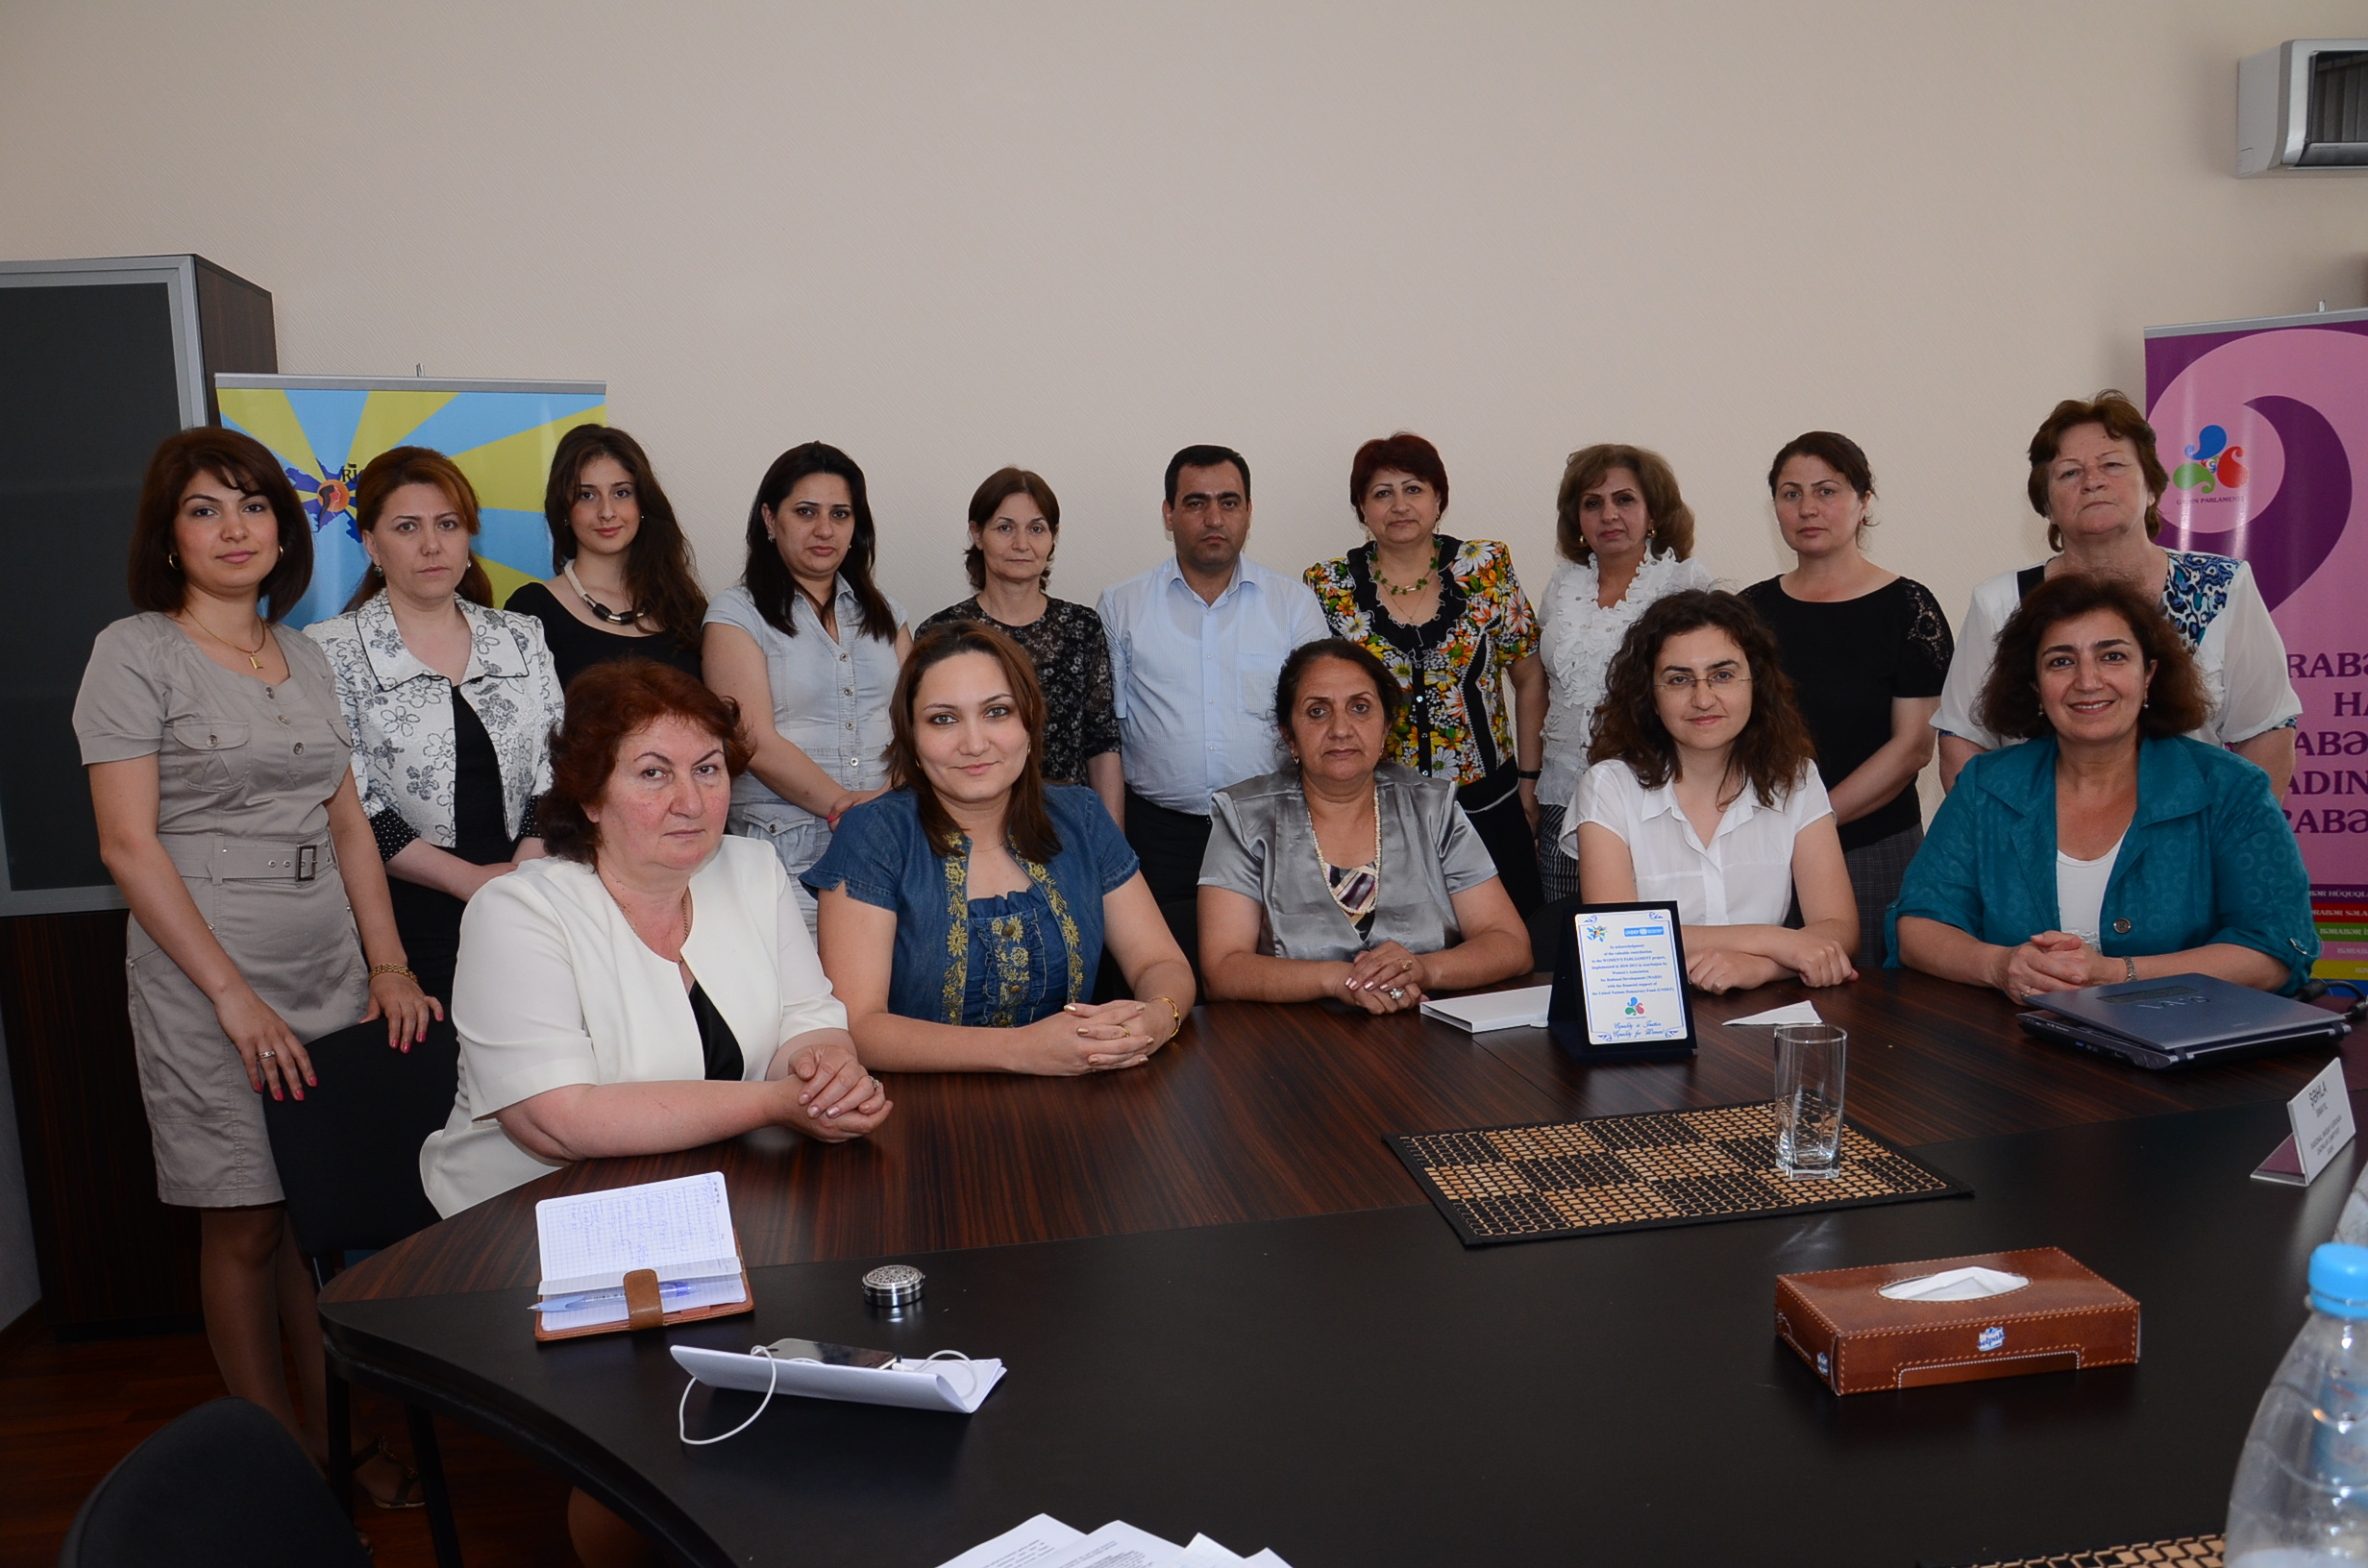 2011, Baku, Women's Parliament of WARD after a plenary.